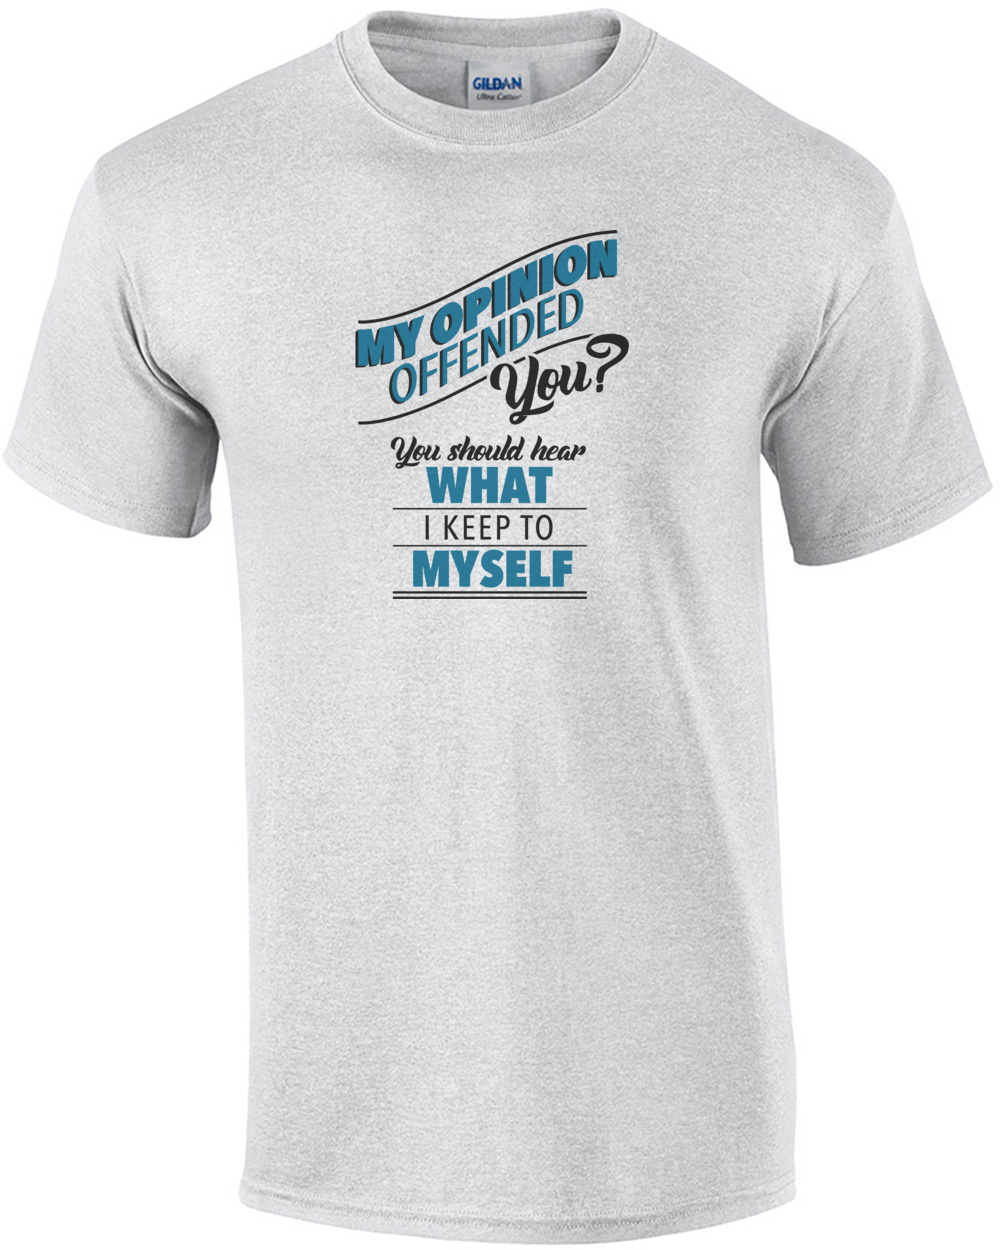 1f45c4c46 my-opinion-offended-you-you-should-hear-what-i-keep-to-myself --funny-sarcastic-tshirt-mens-regular-ash.jpg